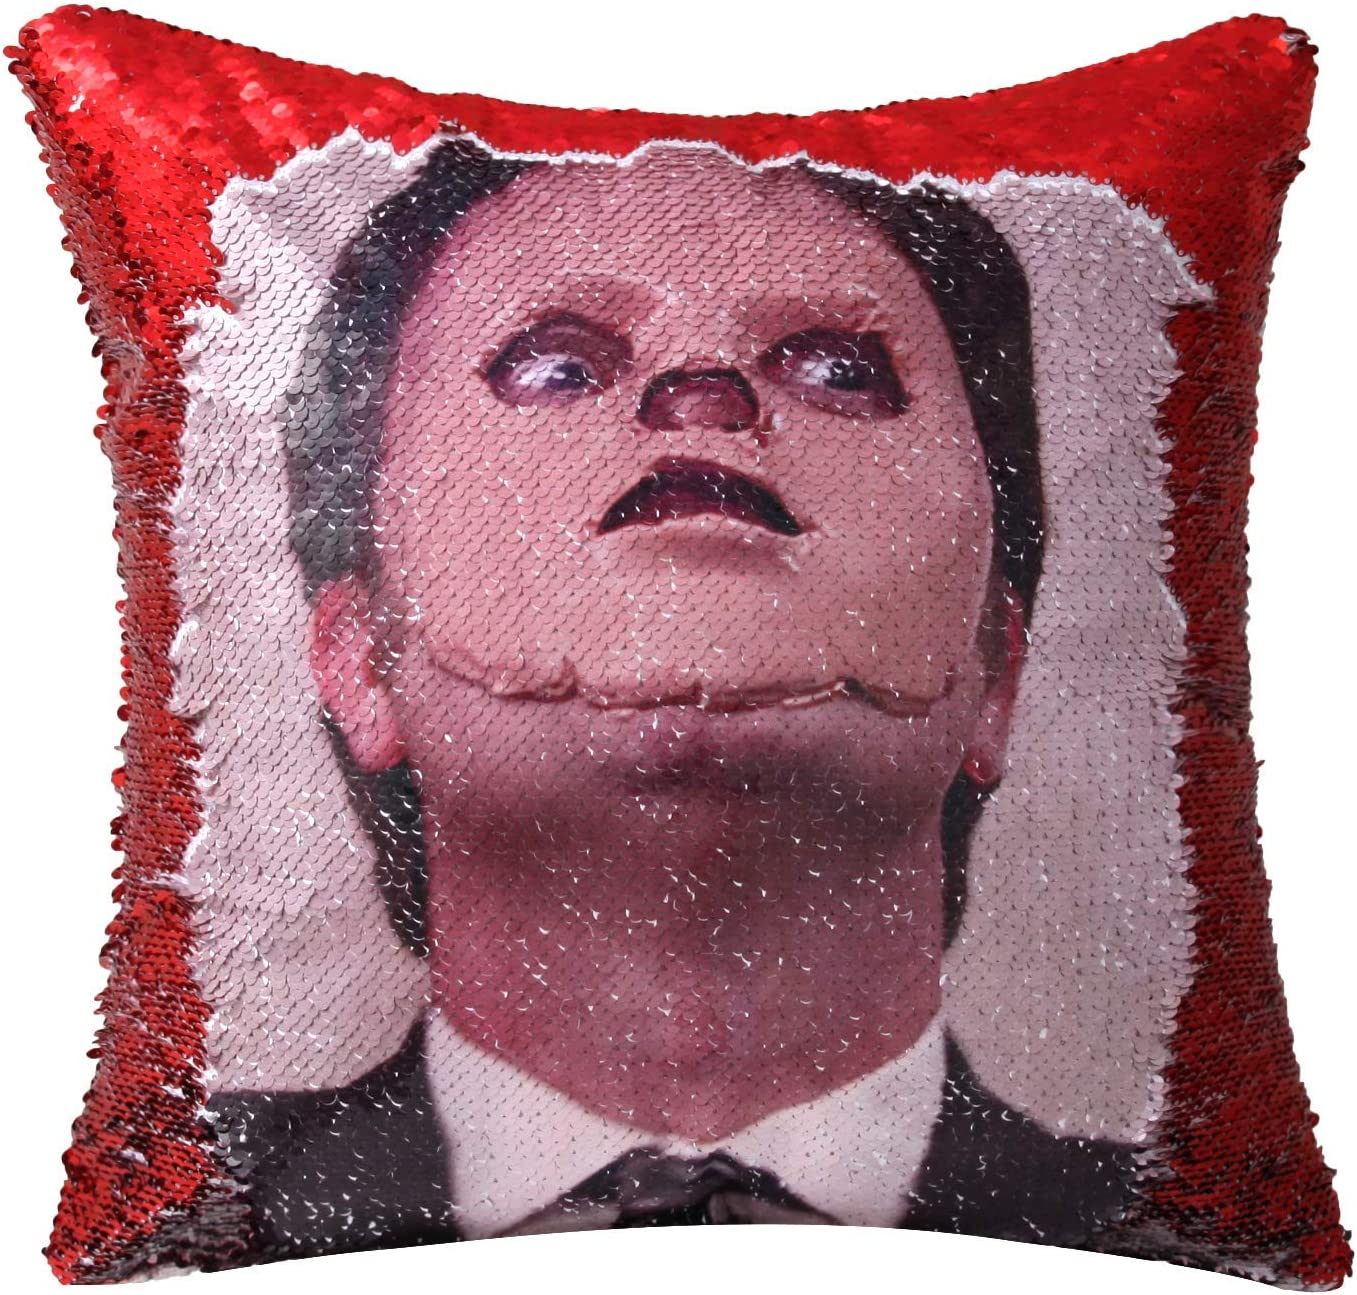 Ainik The Office Dwight Schrute Sequin Pillow Cover Mermaid Throw Pillow Cover Magic Reversible Sequin Cushion Cover Decorative Pillowcase 16x16 inch for Home Couch Decor (Dwight mask red)